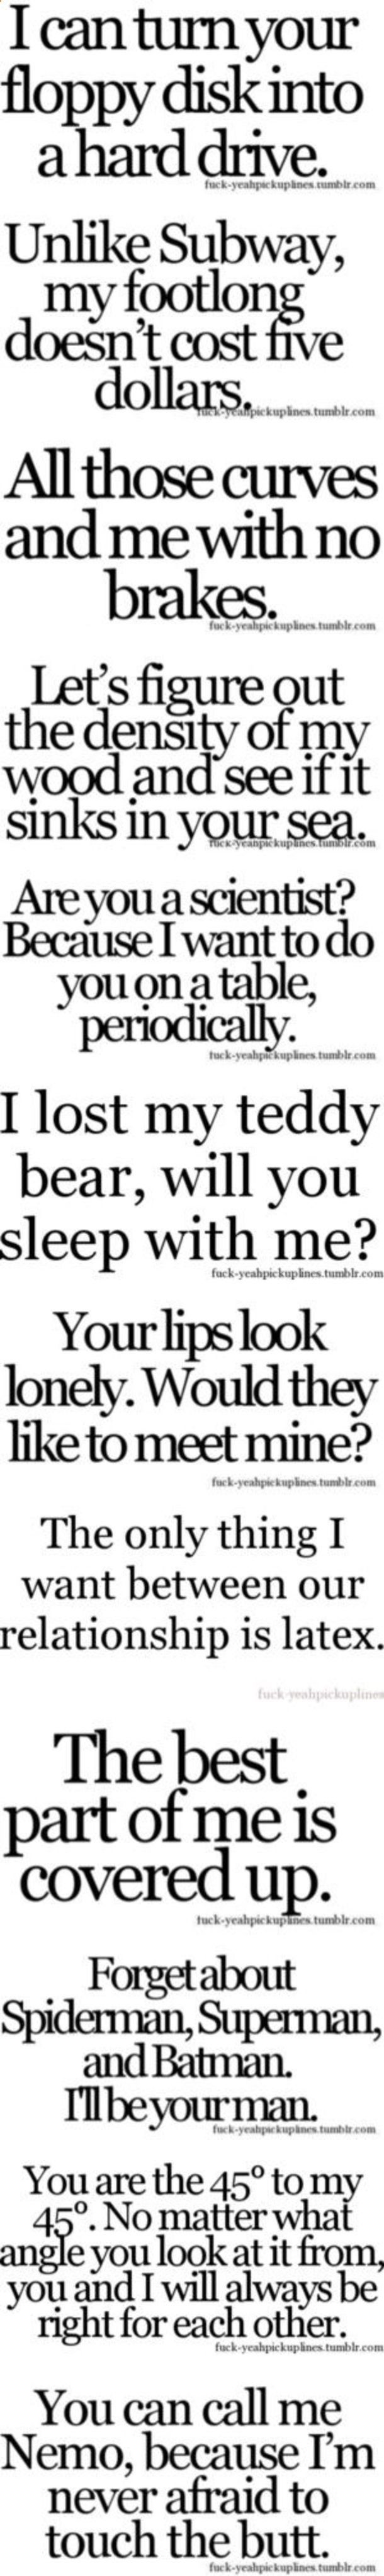 pin by shawnale leathers on my love pinterest pick up lines pick up lines funny and pick up lines cheesy